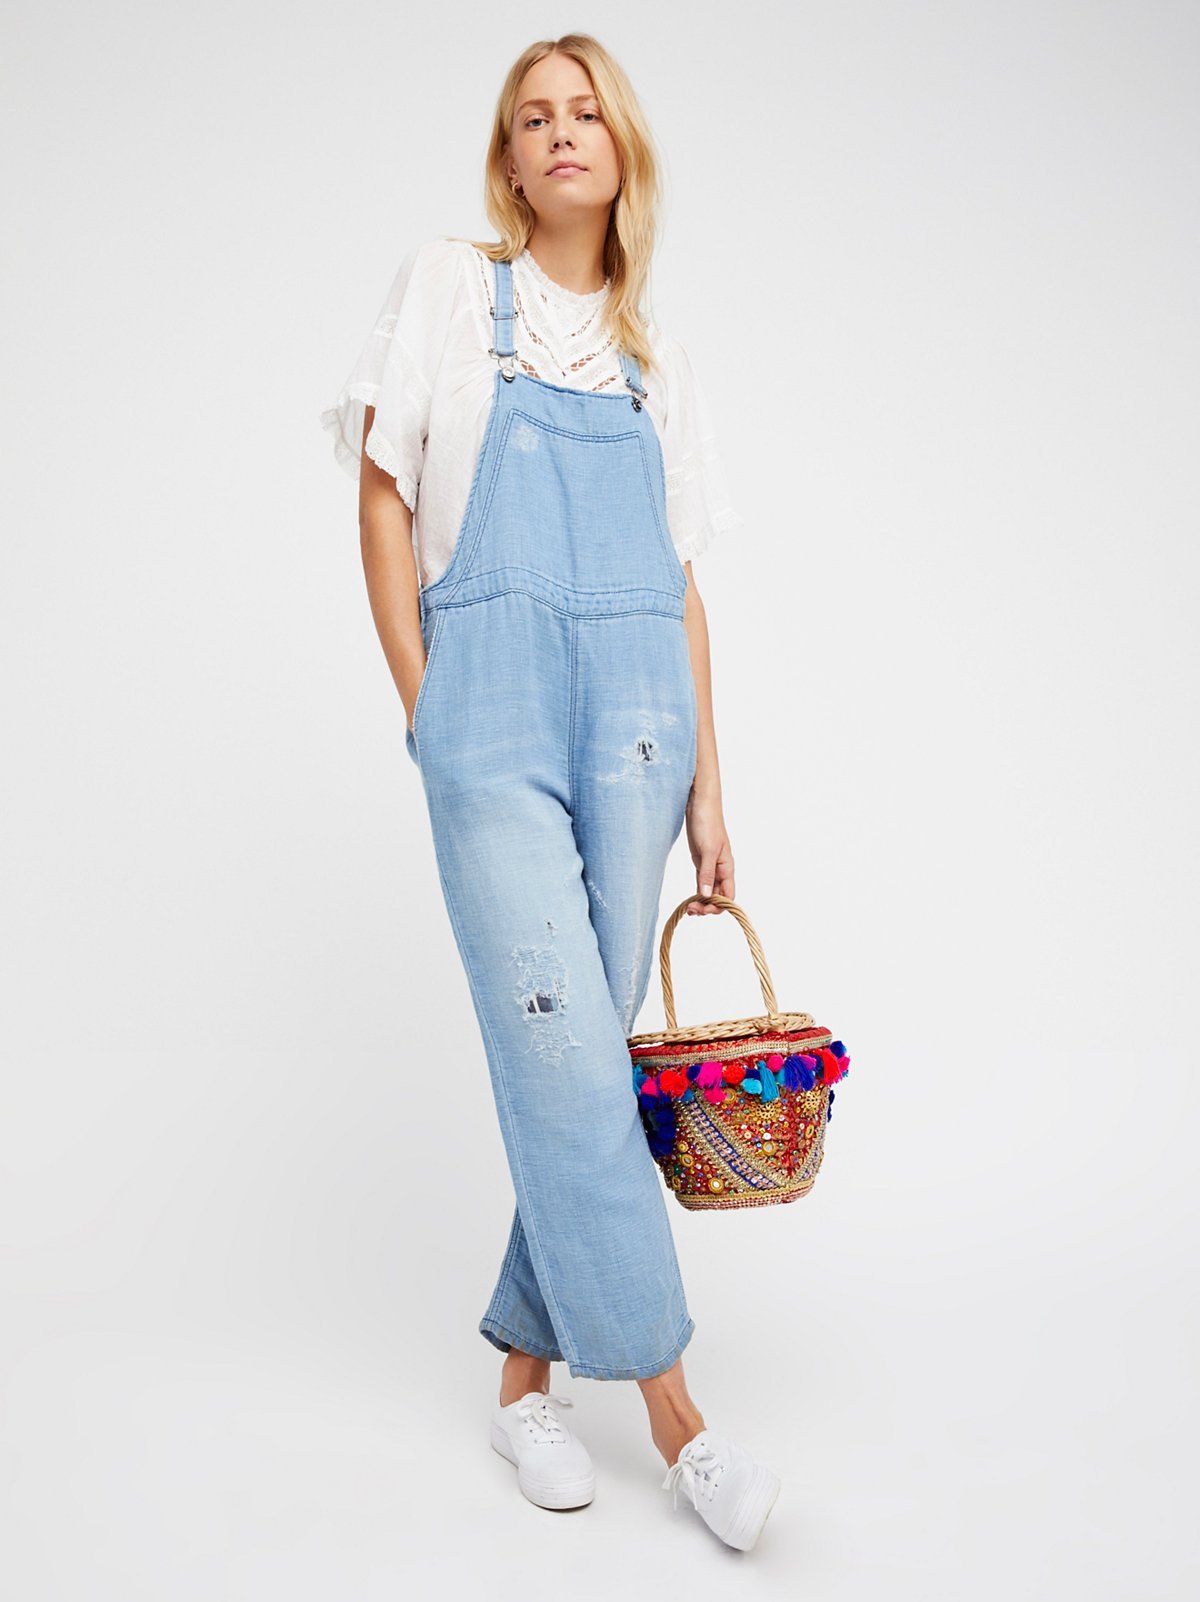 Cute Denim Overalls for Women | Long & Short | Free People